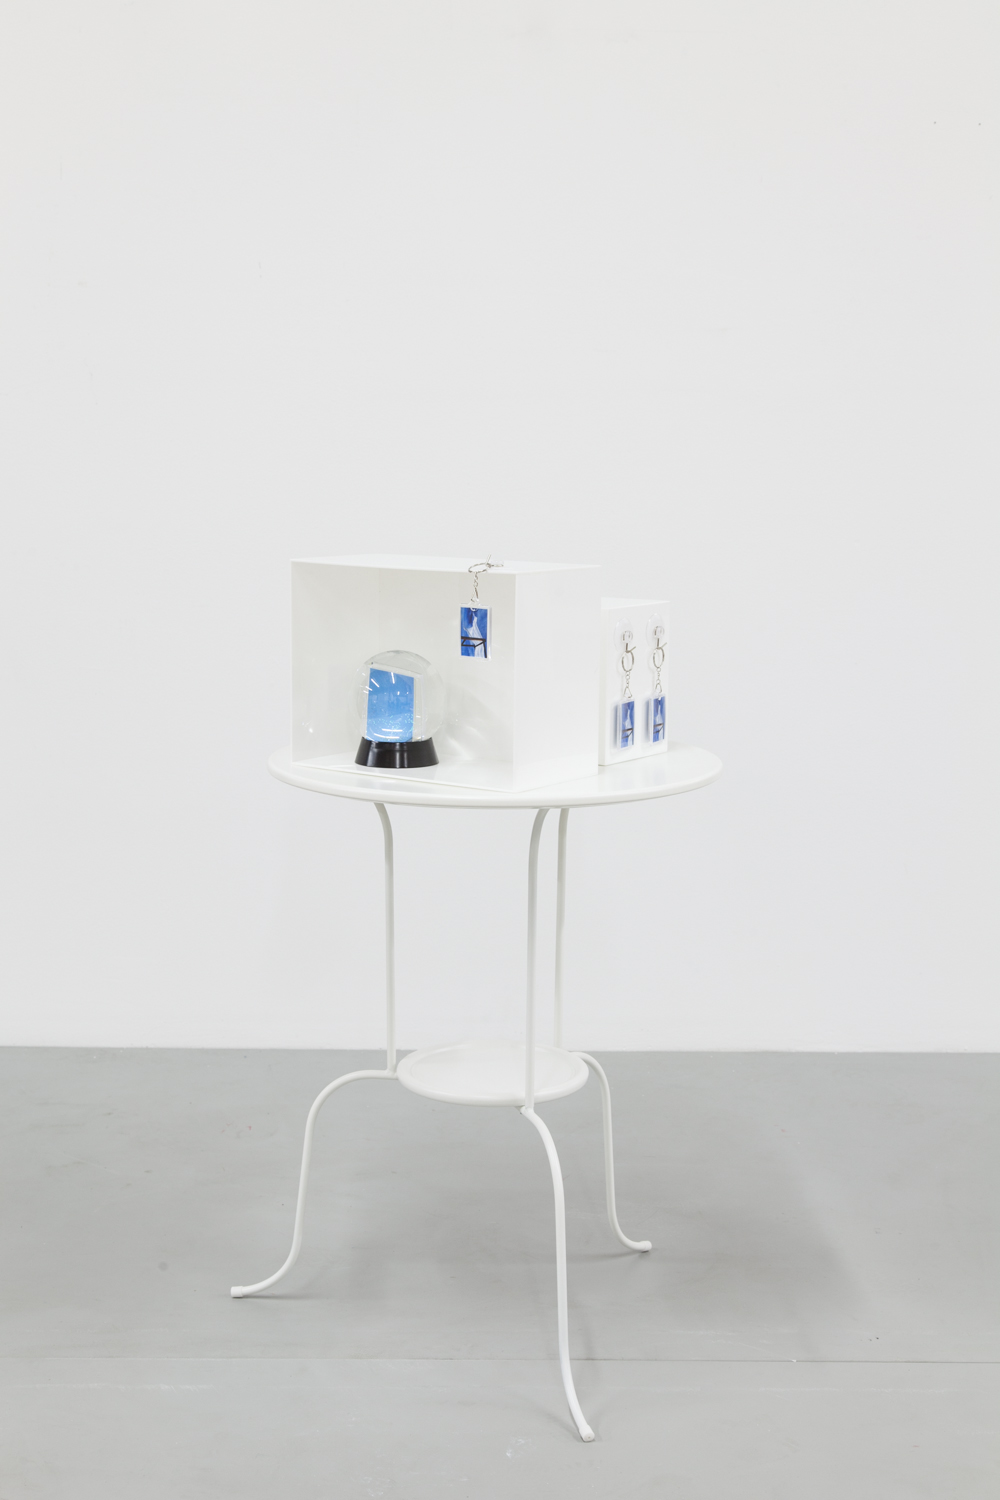 ALEX ITO   For Tolian Soran I/II  2013 Table, plexiglass, aluminum print, plaster, snowglobe, keychain and hooks 36 X 20 X 20 inches